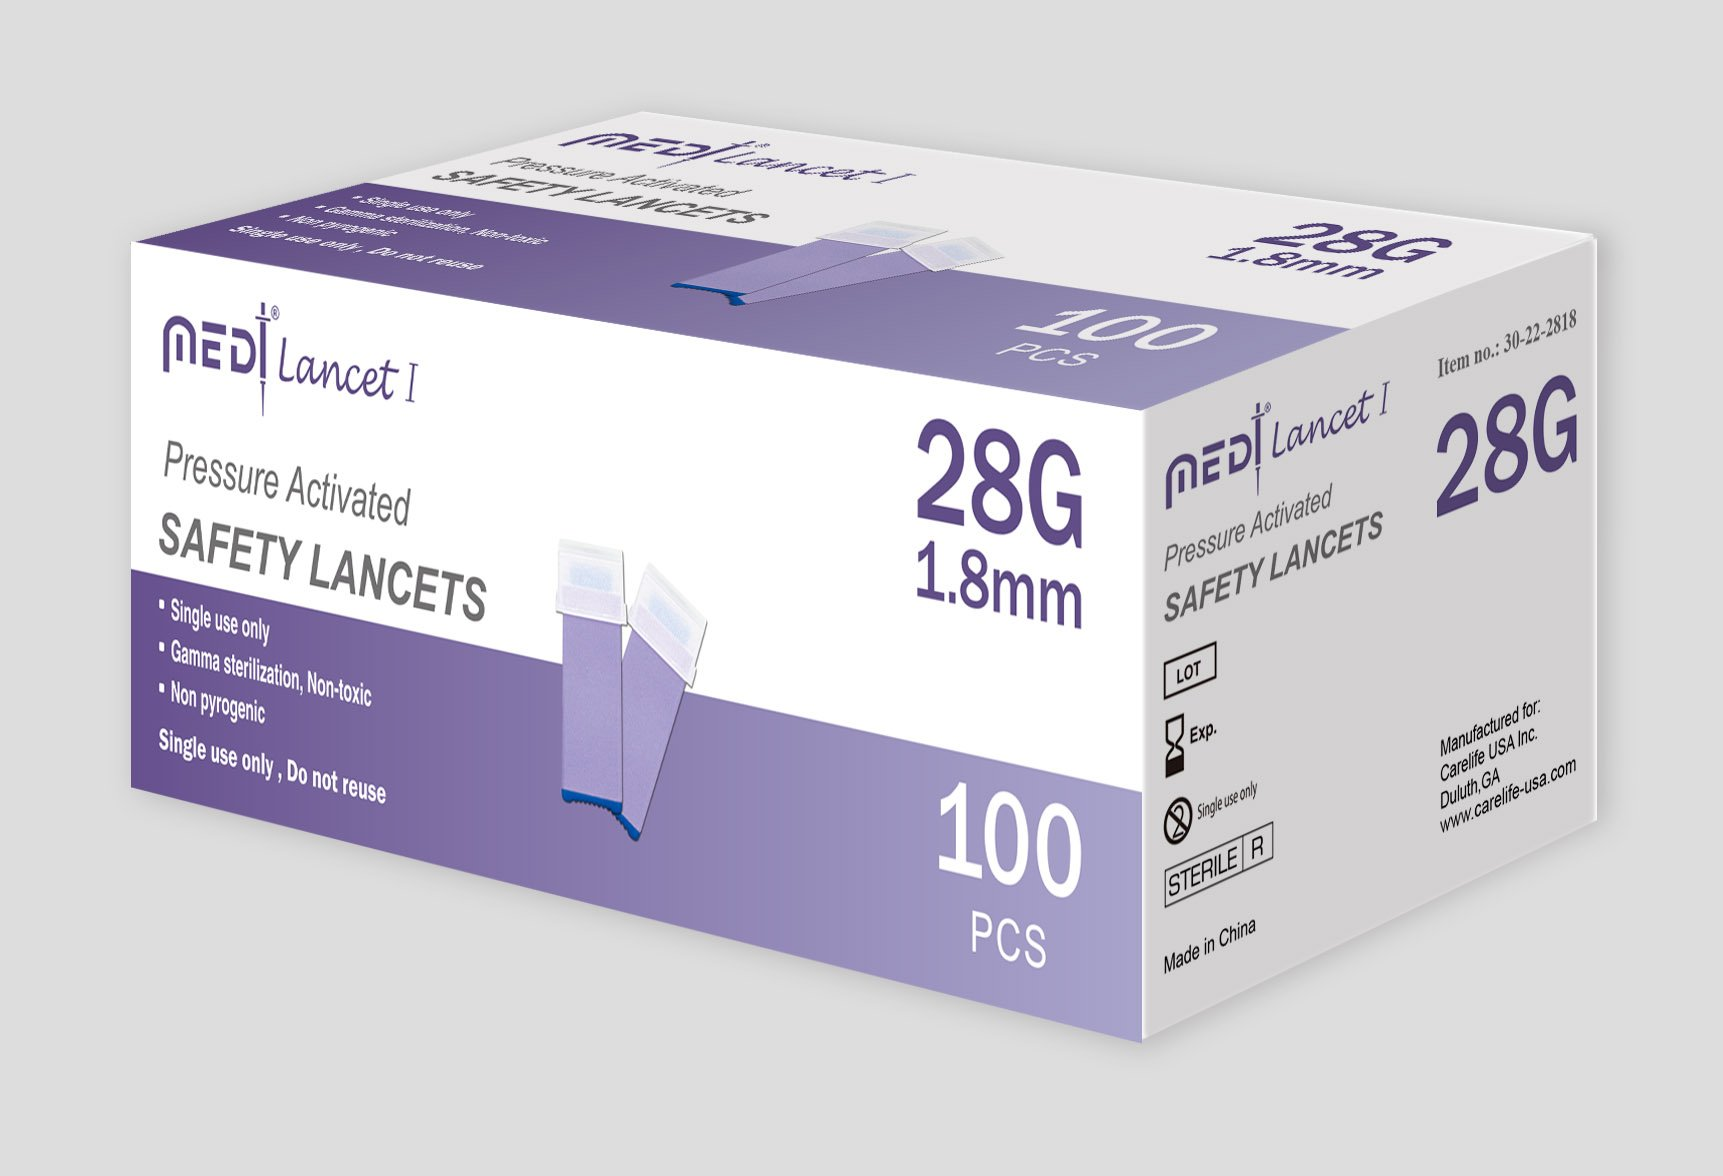 MedtLancet I Pressure Activated Safety Lancets 28Gx1.8mm, 100 pieces